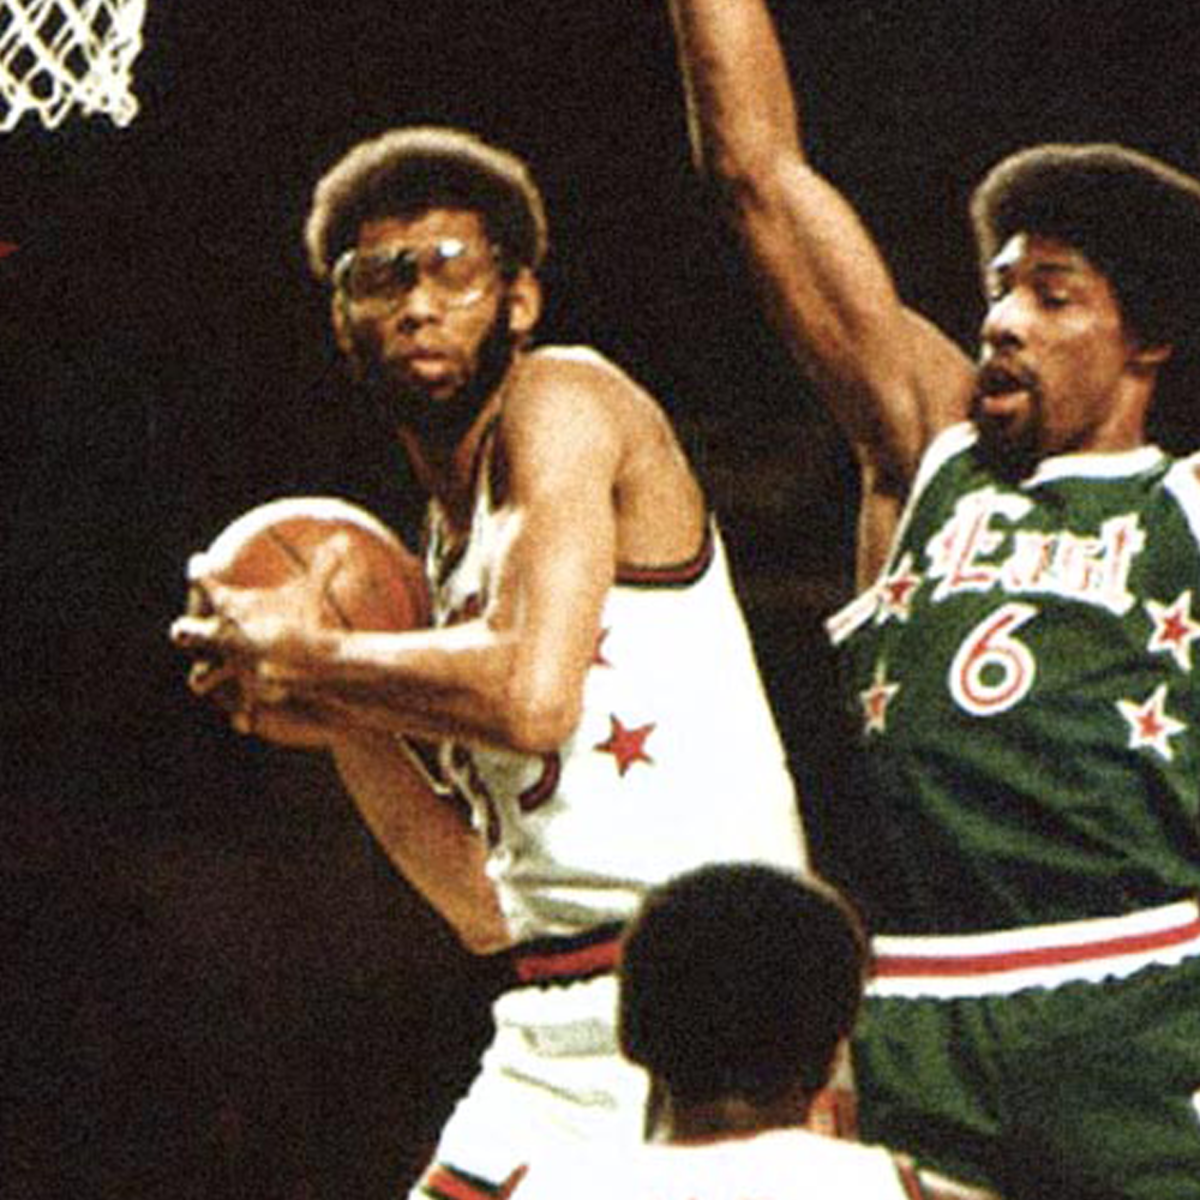 Kareem Abdul-jabbar showing his immense talent in rebounding.